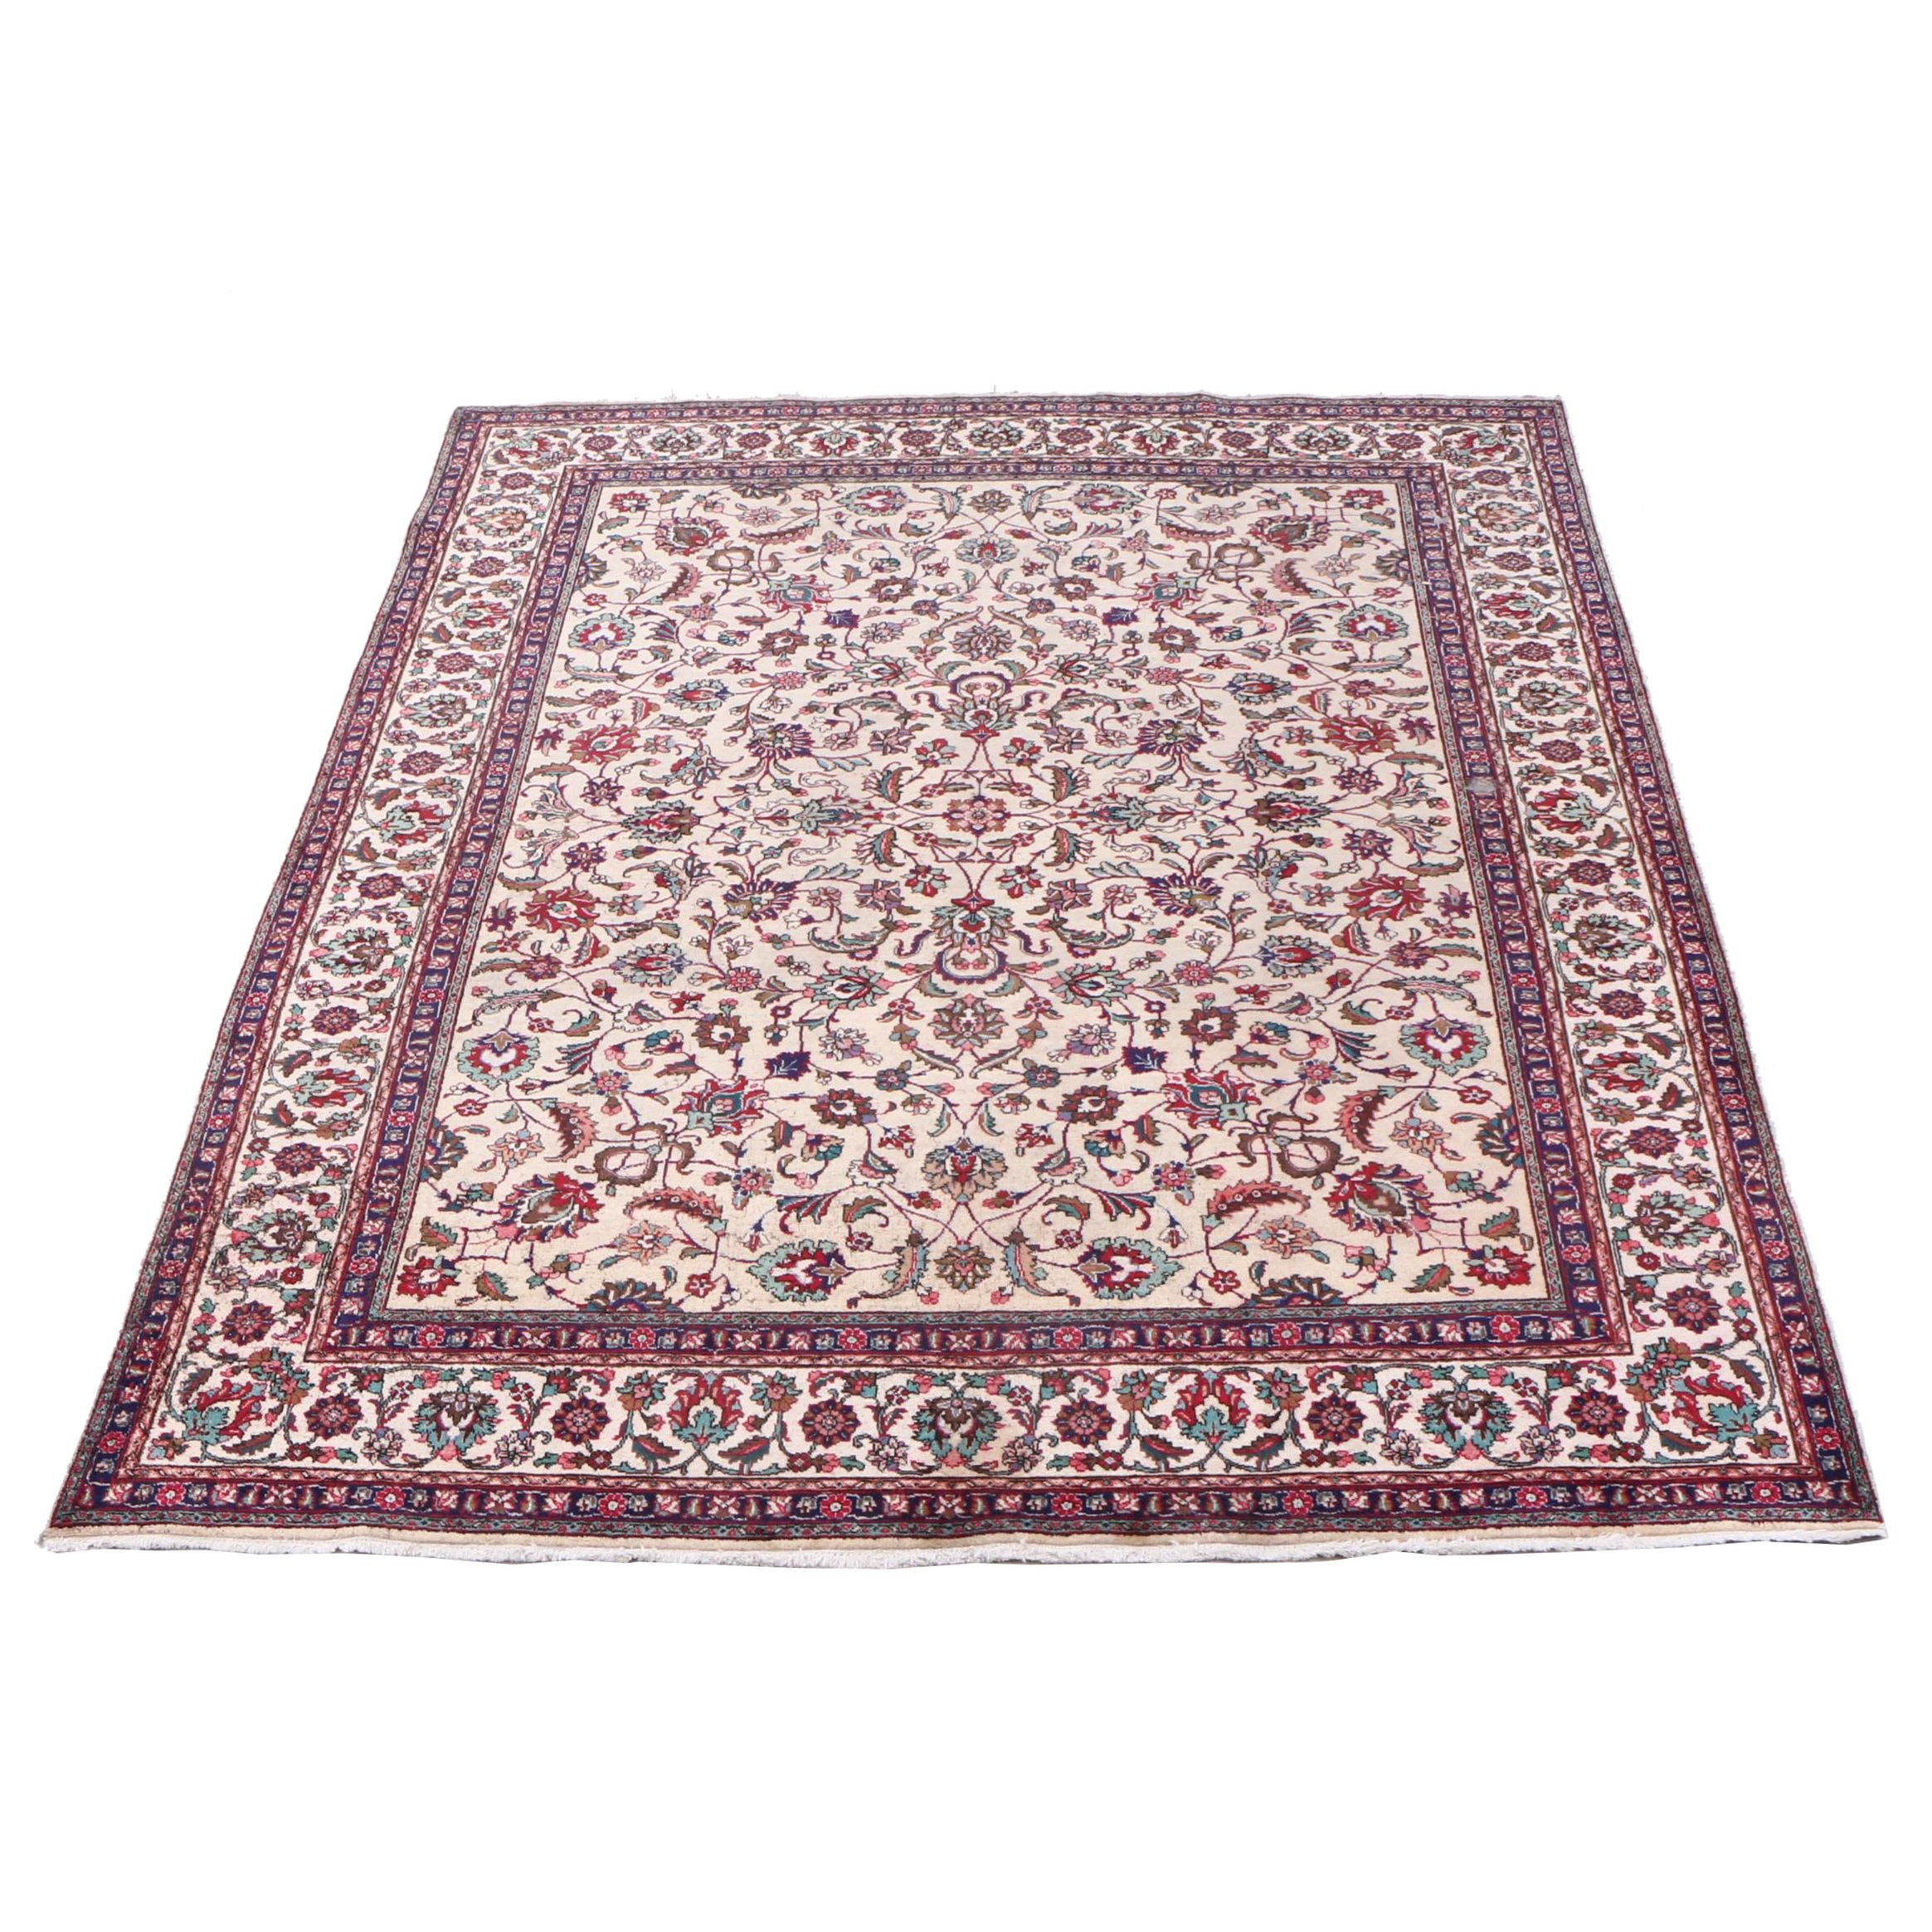 Hand-Knotted Indo-Persian Kashan Wool Room Sized Rug